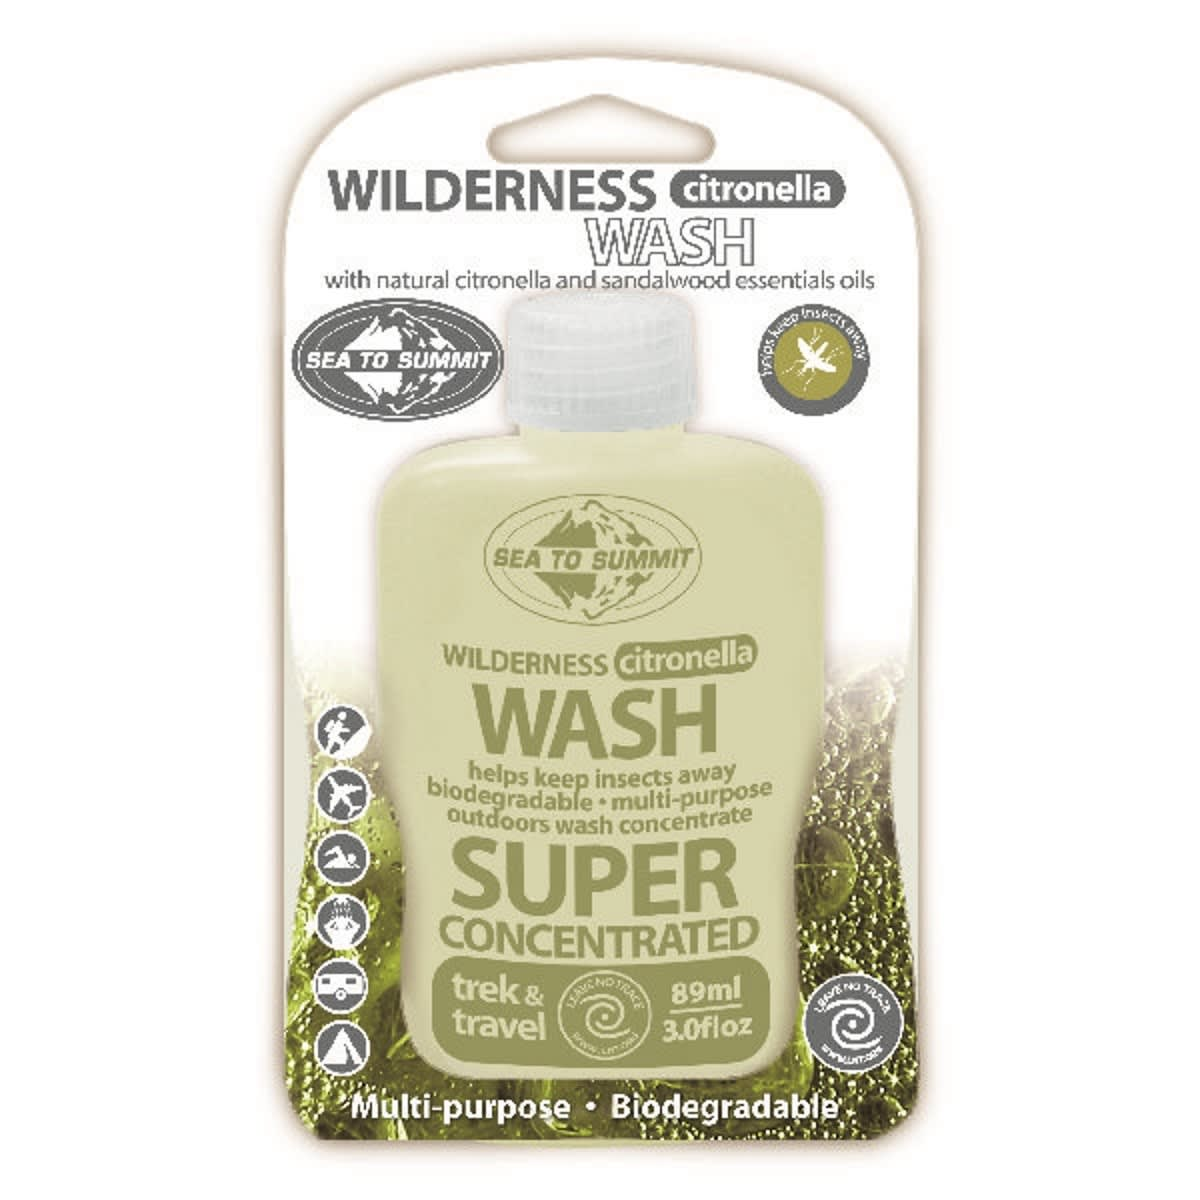 Sea to Summit Wilderness Citronella Wash 89ml